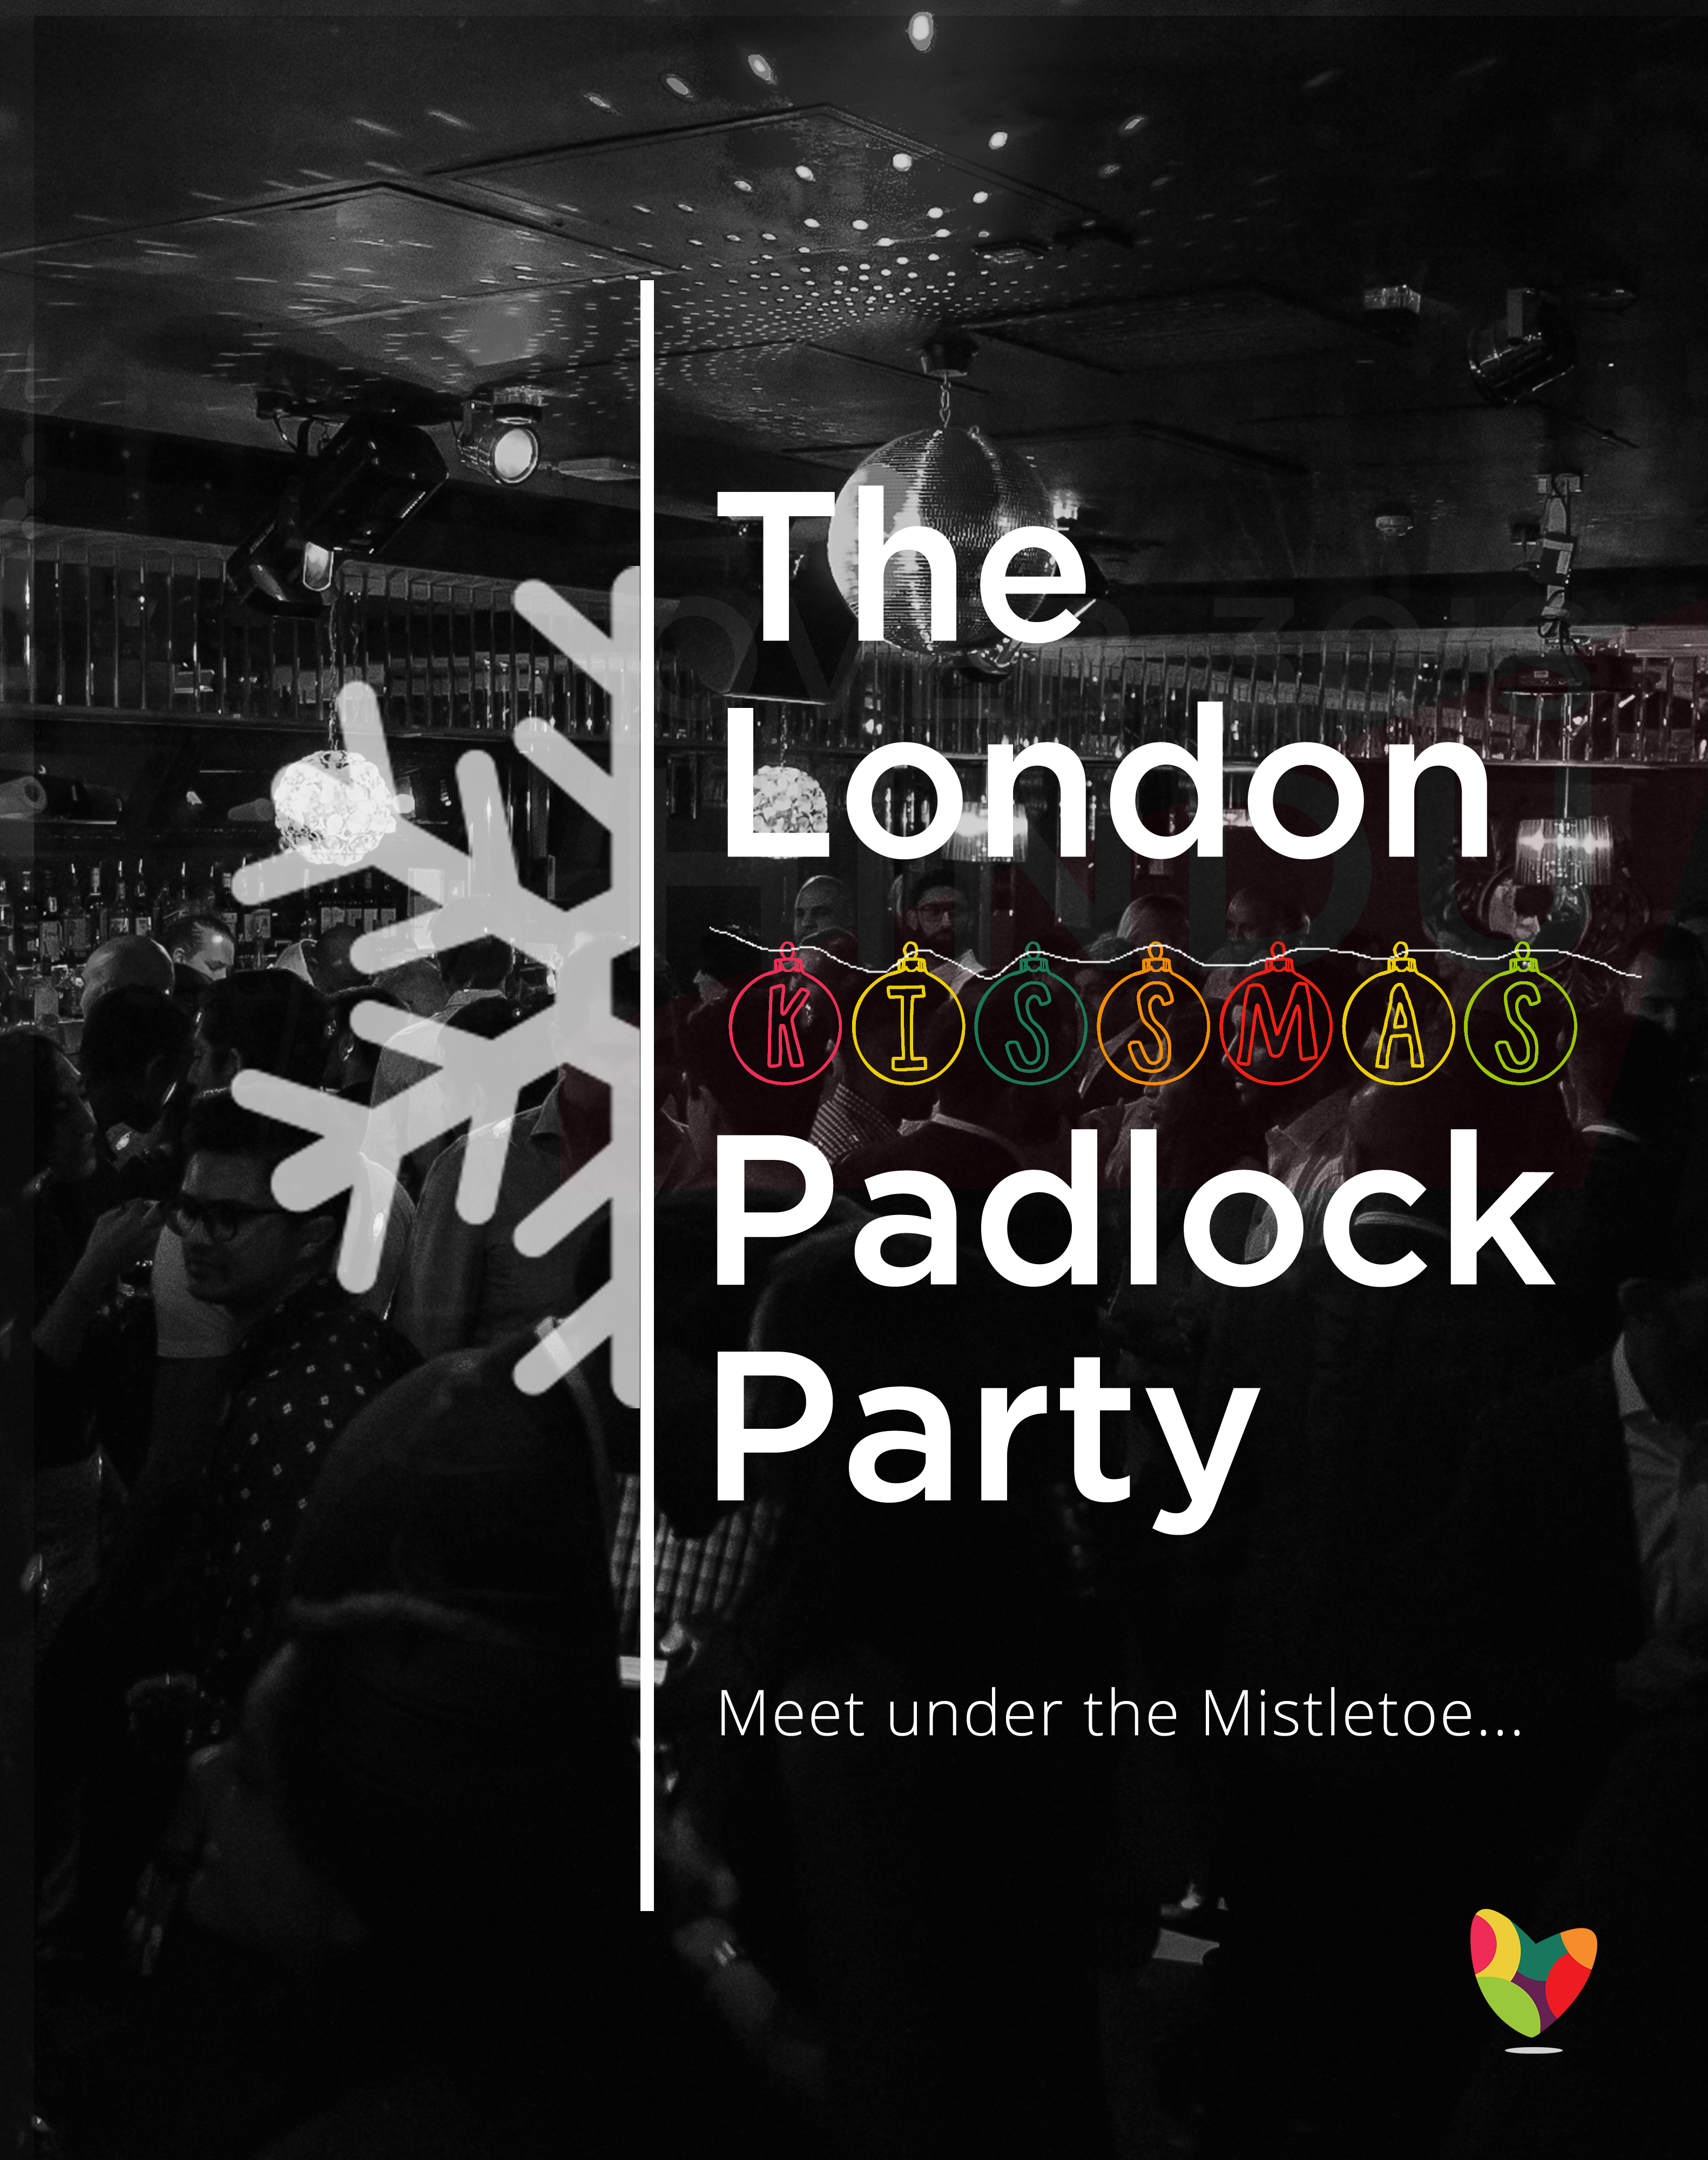 The London Kissmas Padlock Party